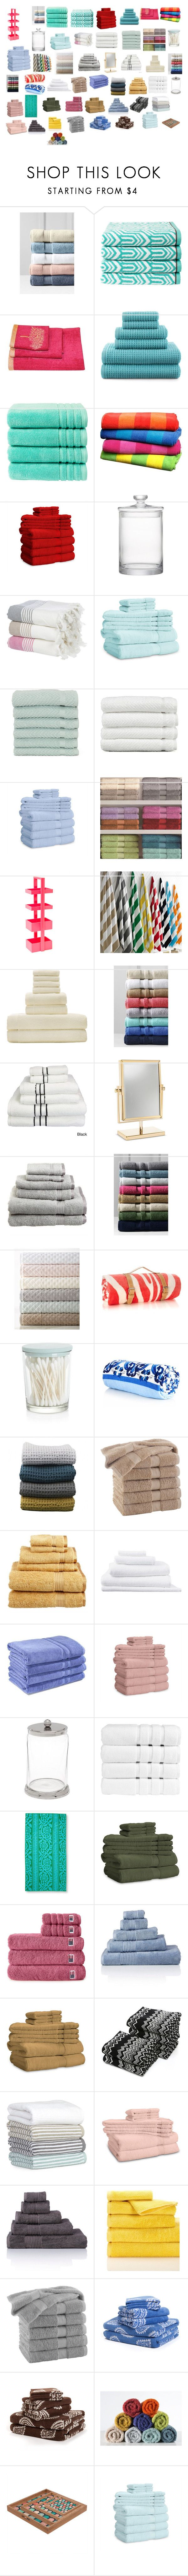 """banyo havluları"" by mervenara on Polyvore featuring interior, interiors, interior design, ev, home decor, interior decorating, Lands' End, Christy, JCPenney Home ve ExceptionalSheets"